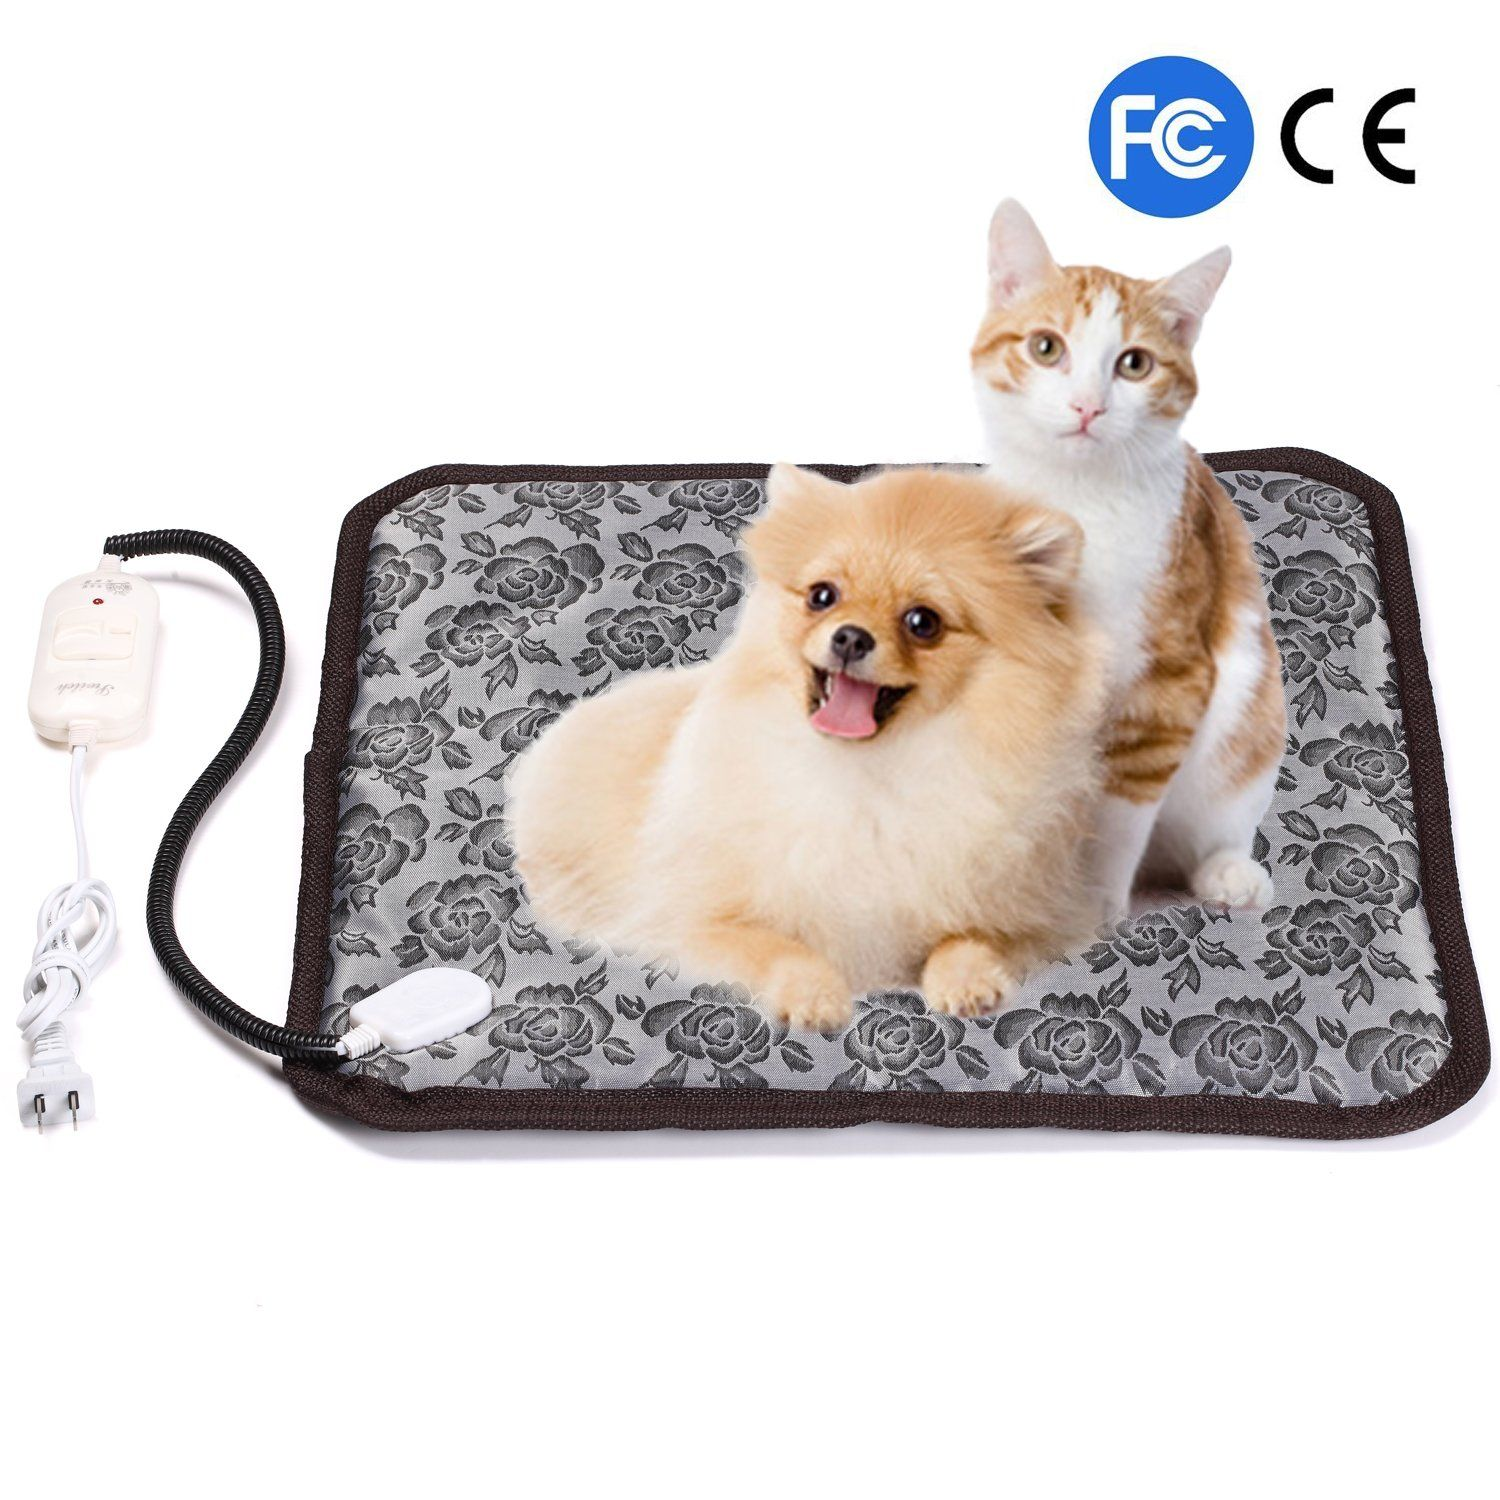 Pet Heating Pad Firow Electric Heated Bed Warming Pad Pet Bed Warmer For Dog House Heater Cat Puppy Animal Kitten In Pet Heating Pad Dog House Heater Dog House